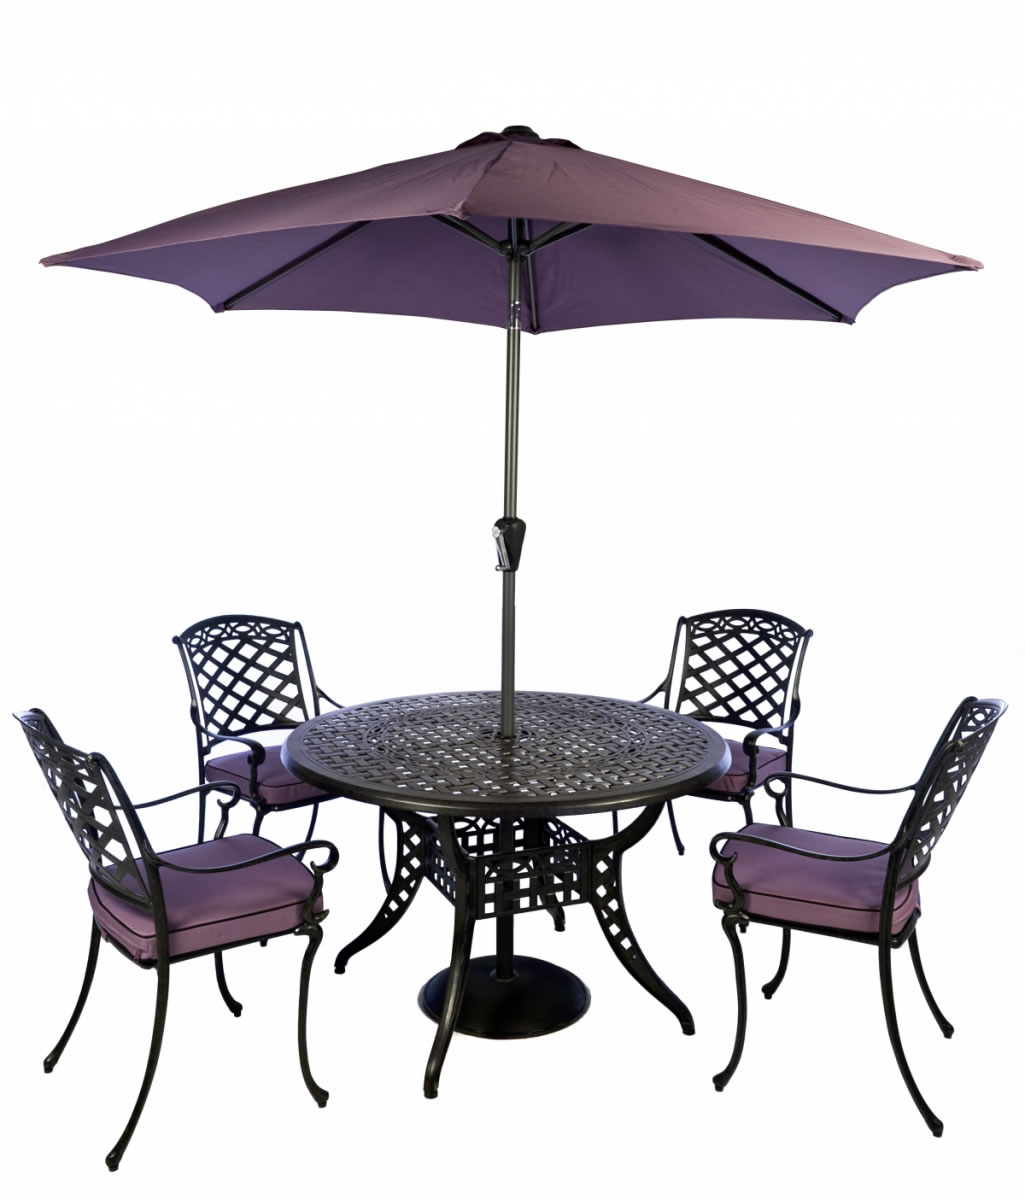 Gypsy 4 Seater Furniture Set Coke Blackberry by Idle Rose